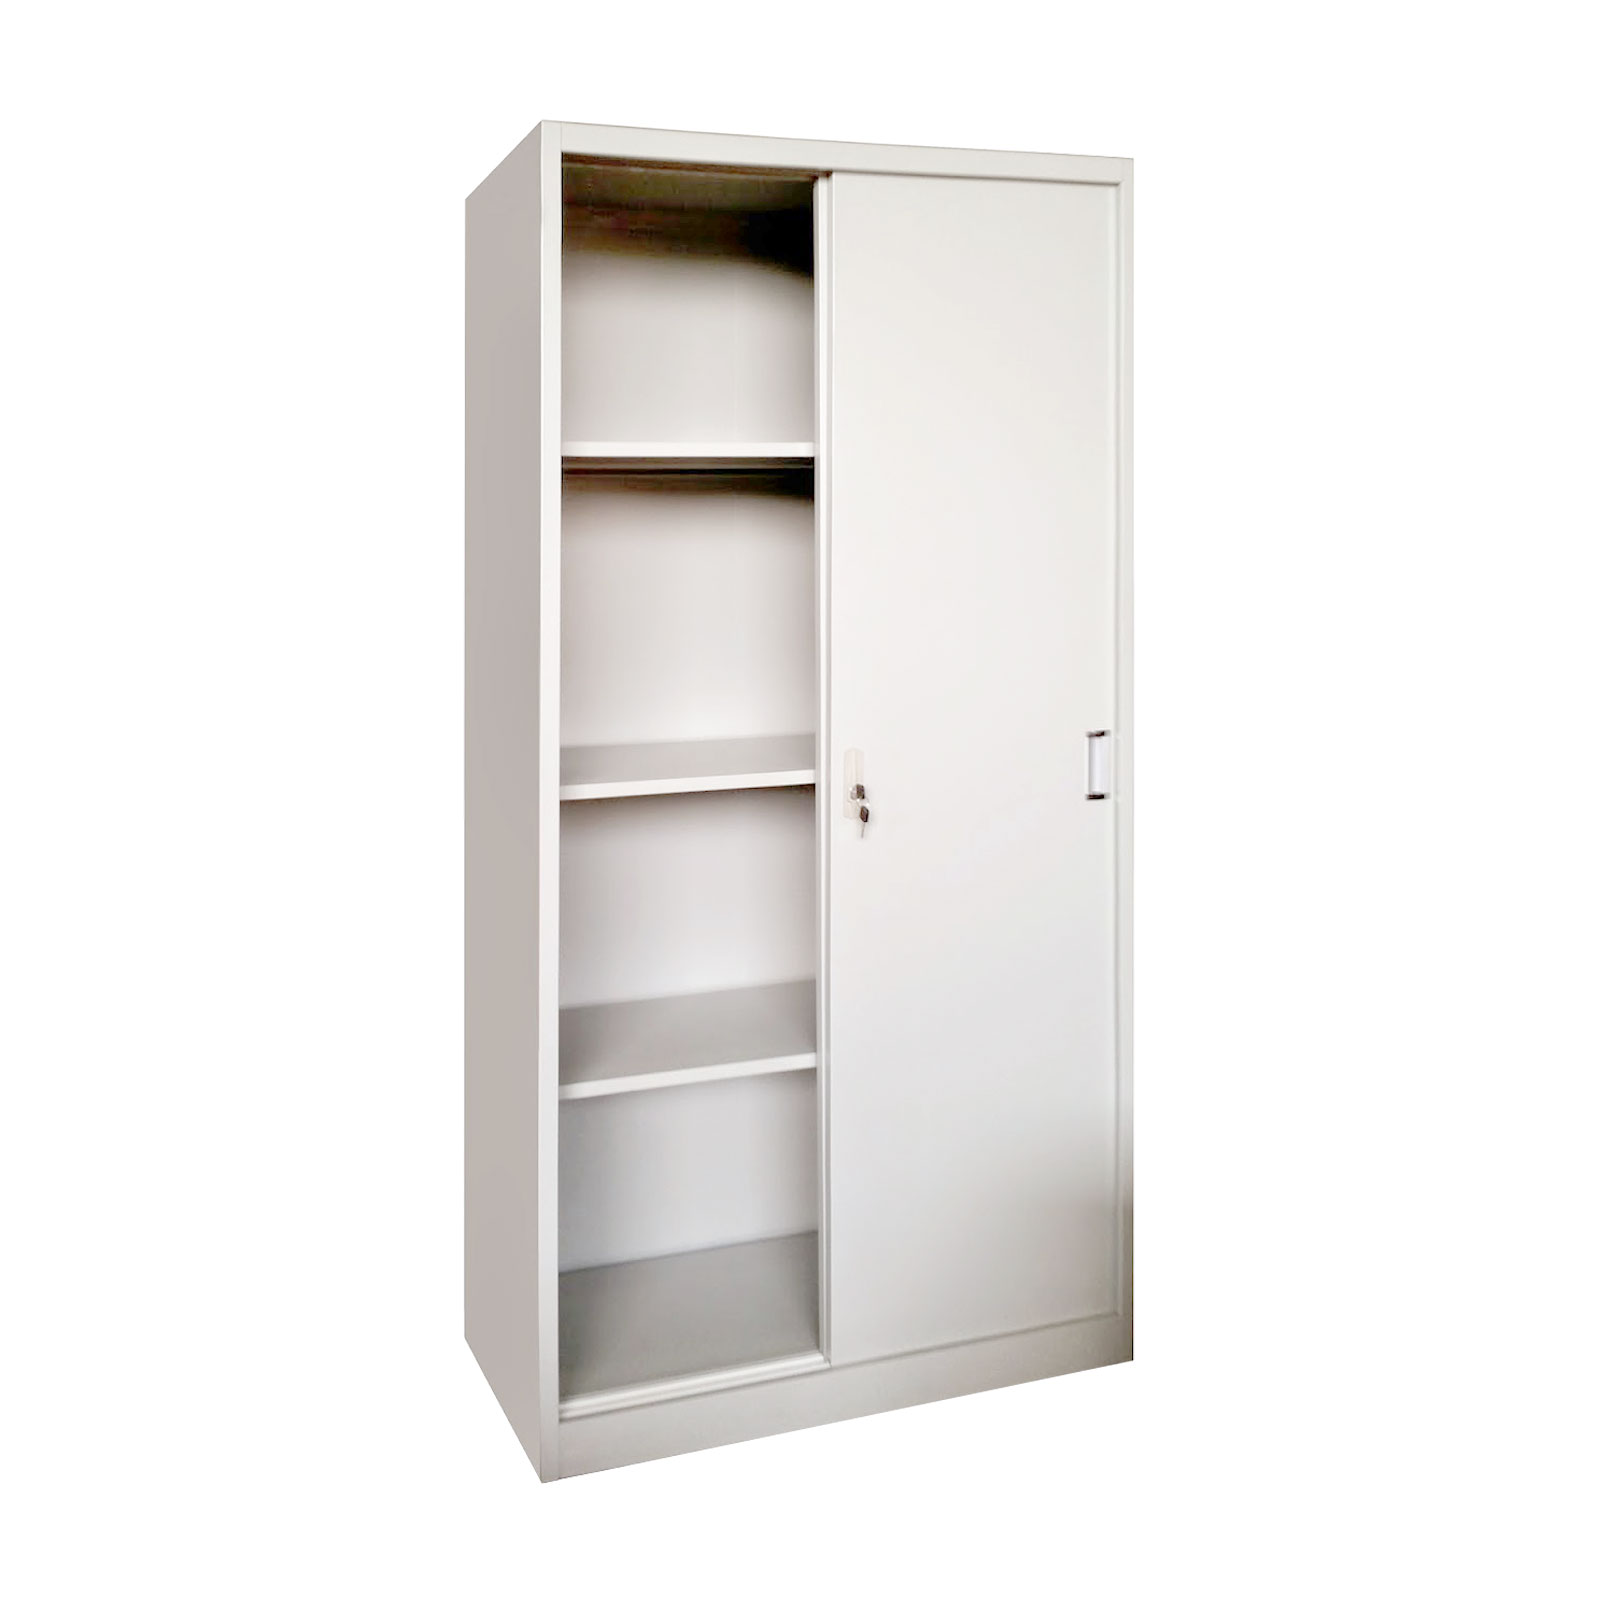 cabinet-full-height-sliding-door.jpg